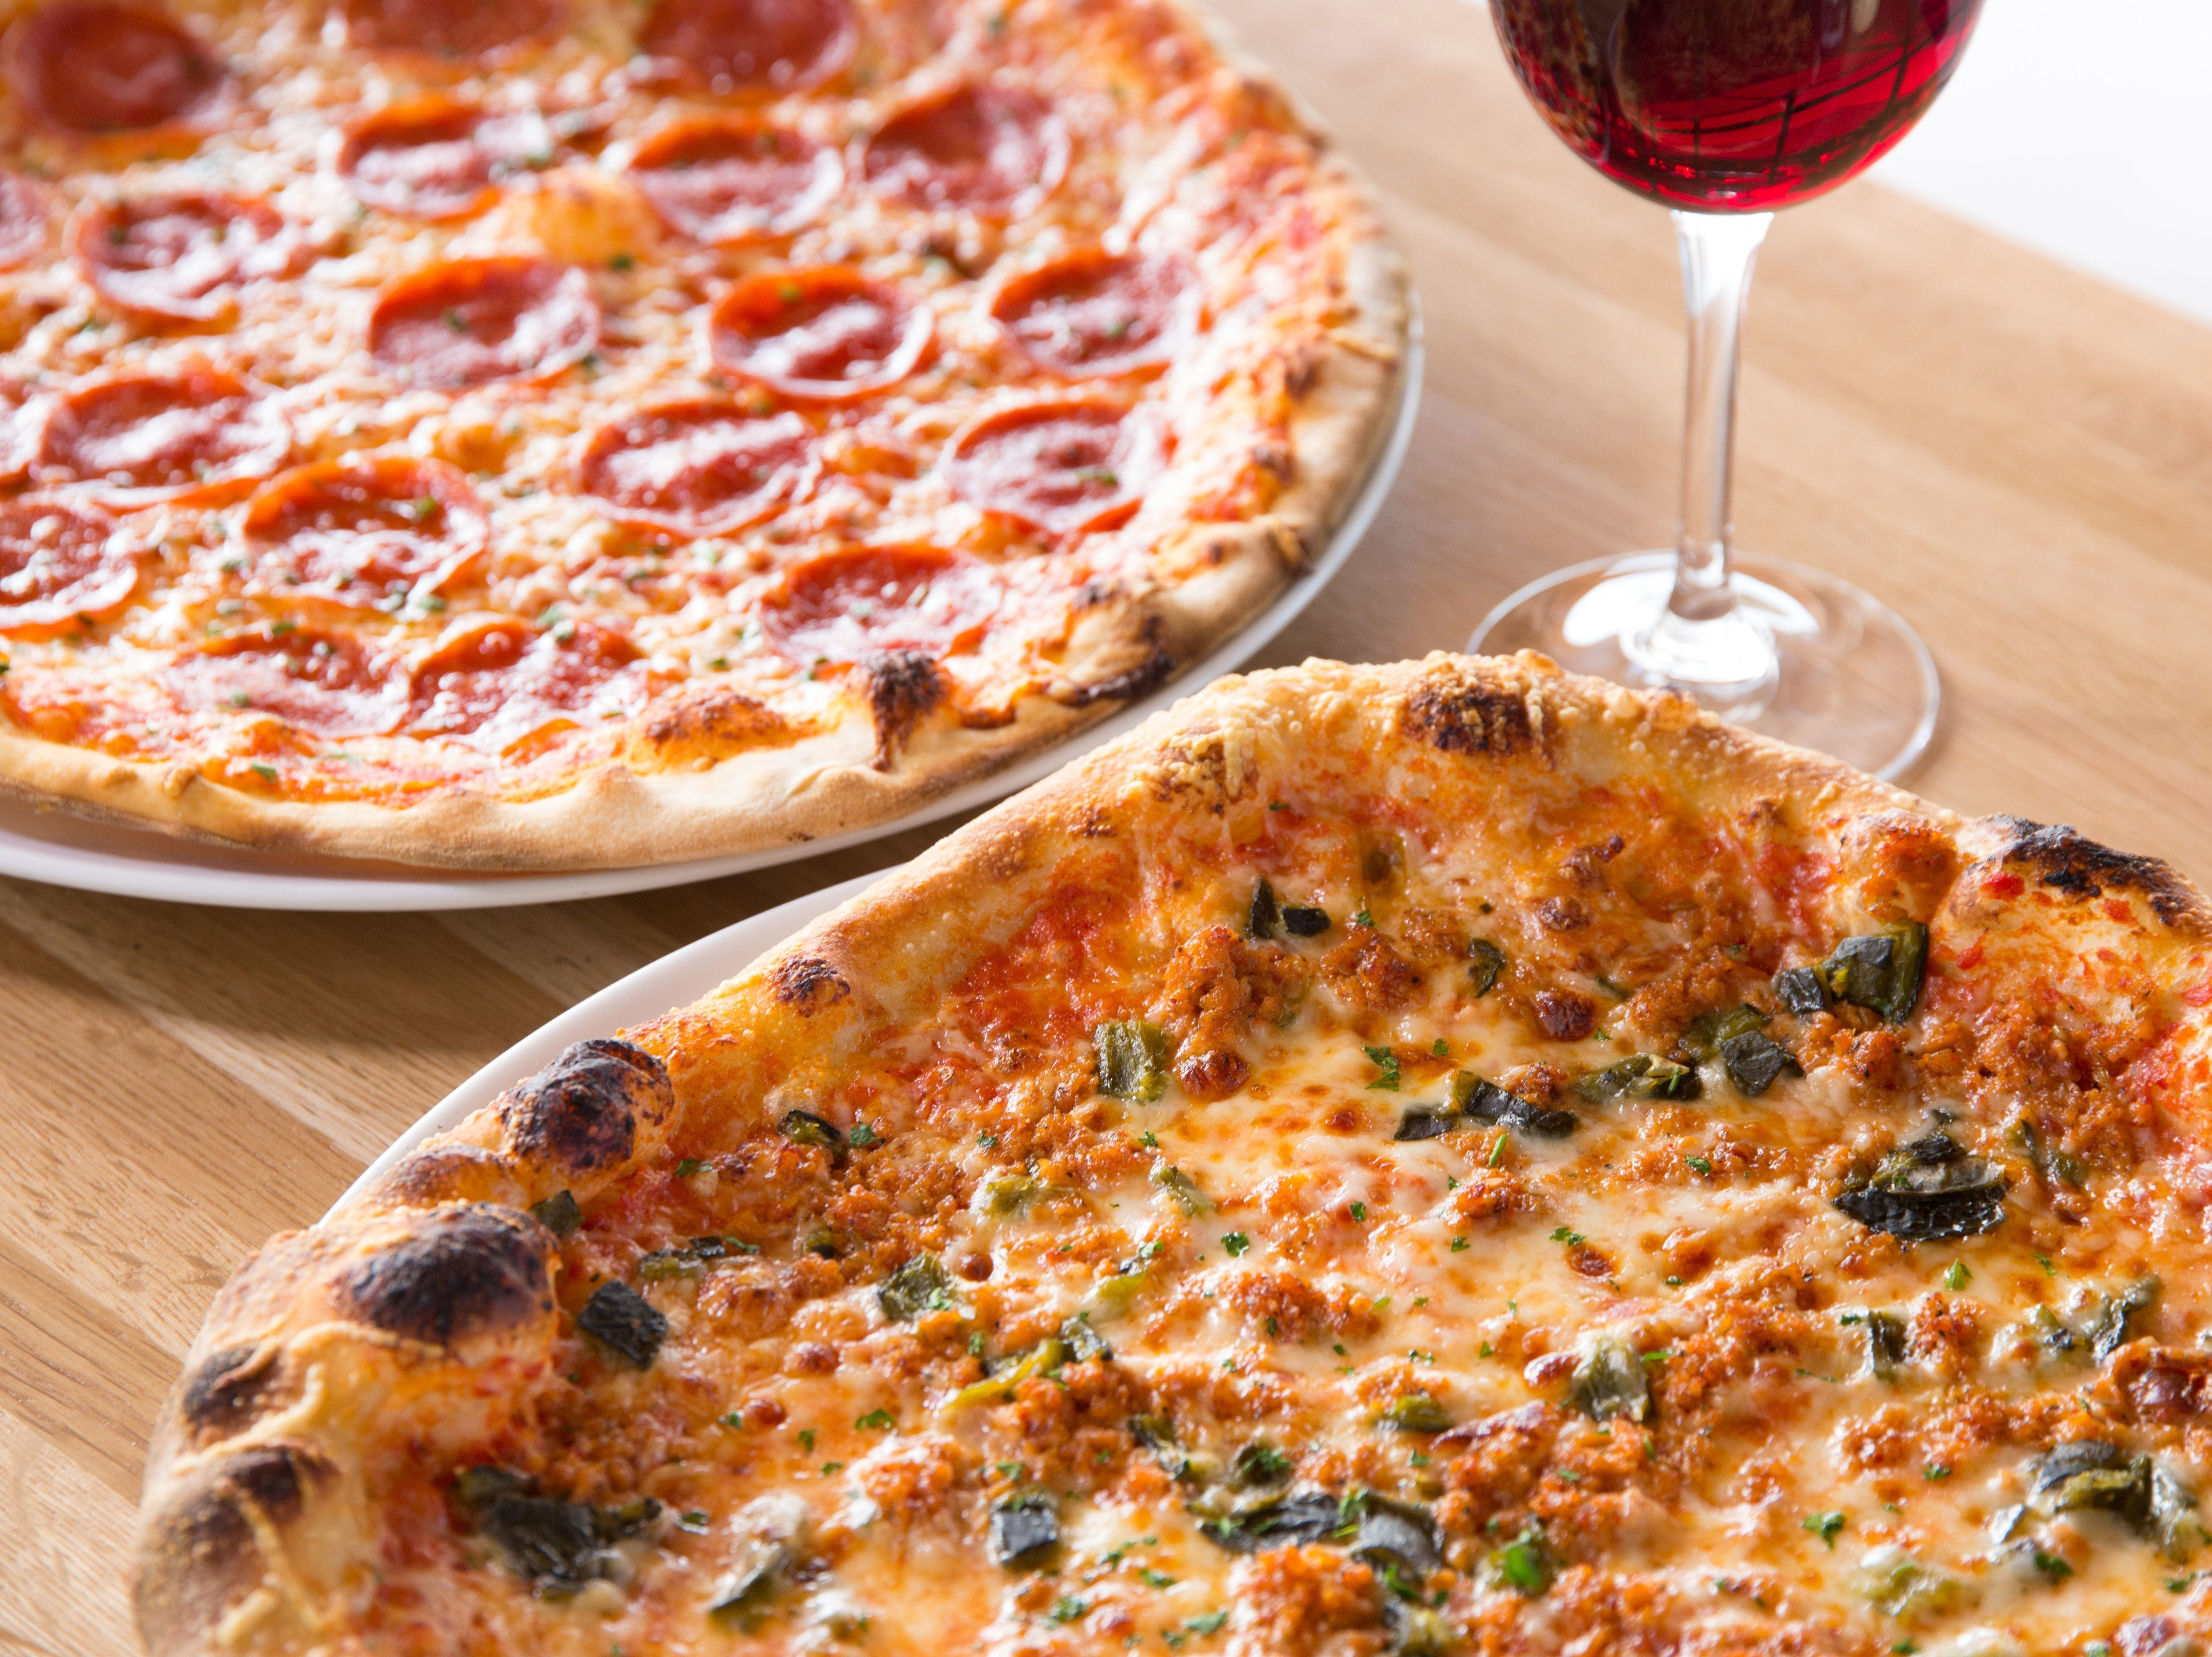 Sauce Pizza & Wine | Nov. 12, all active police, firefighters, EMTs and active, reserve and retired military get 20 percent off their orders. | Details: 20491 E. Rittenhouse Road, Queen Creek. 480-902-4877. Also, 14418 N. Scottsdale Road, Scottsdale. 480-321-8800. Other locations at saucepizzaandwine.com.